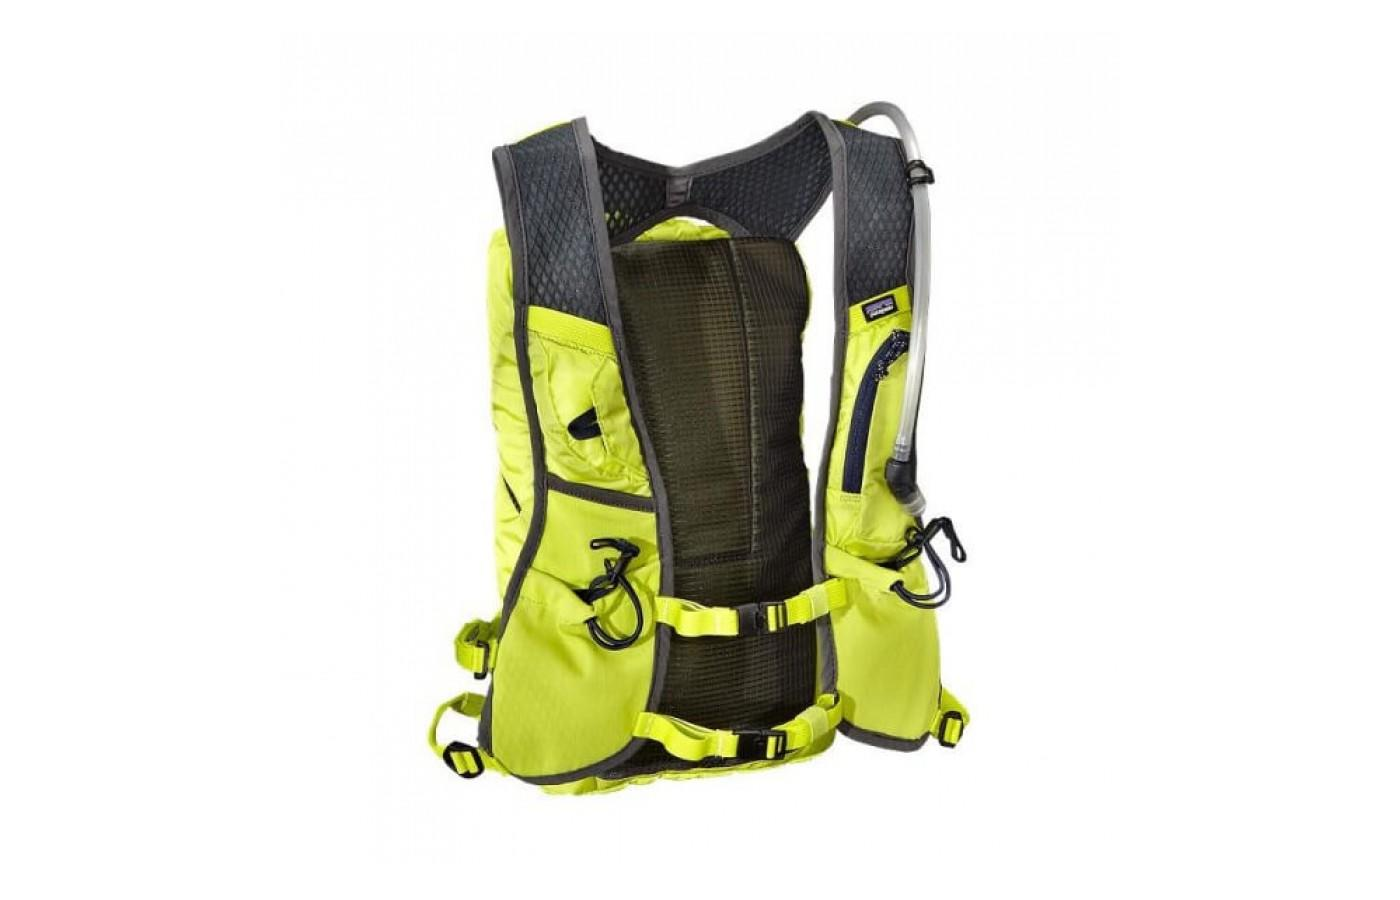 The Patagonia Fore Runner Vest 10L comes with a 2L bladder